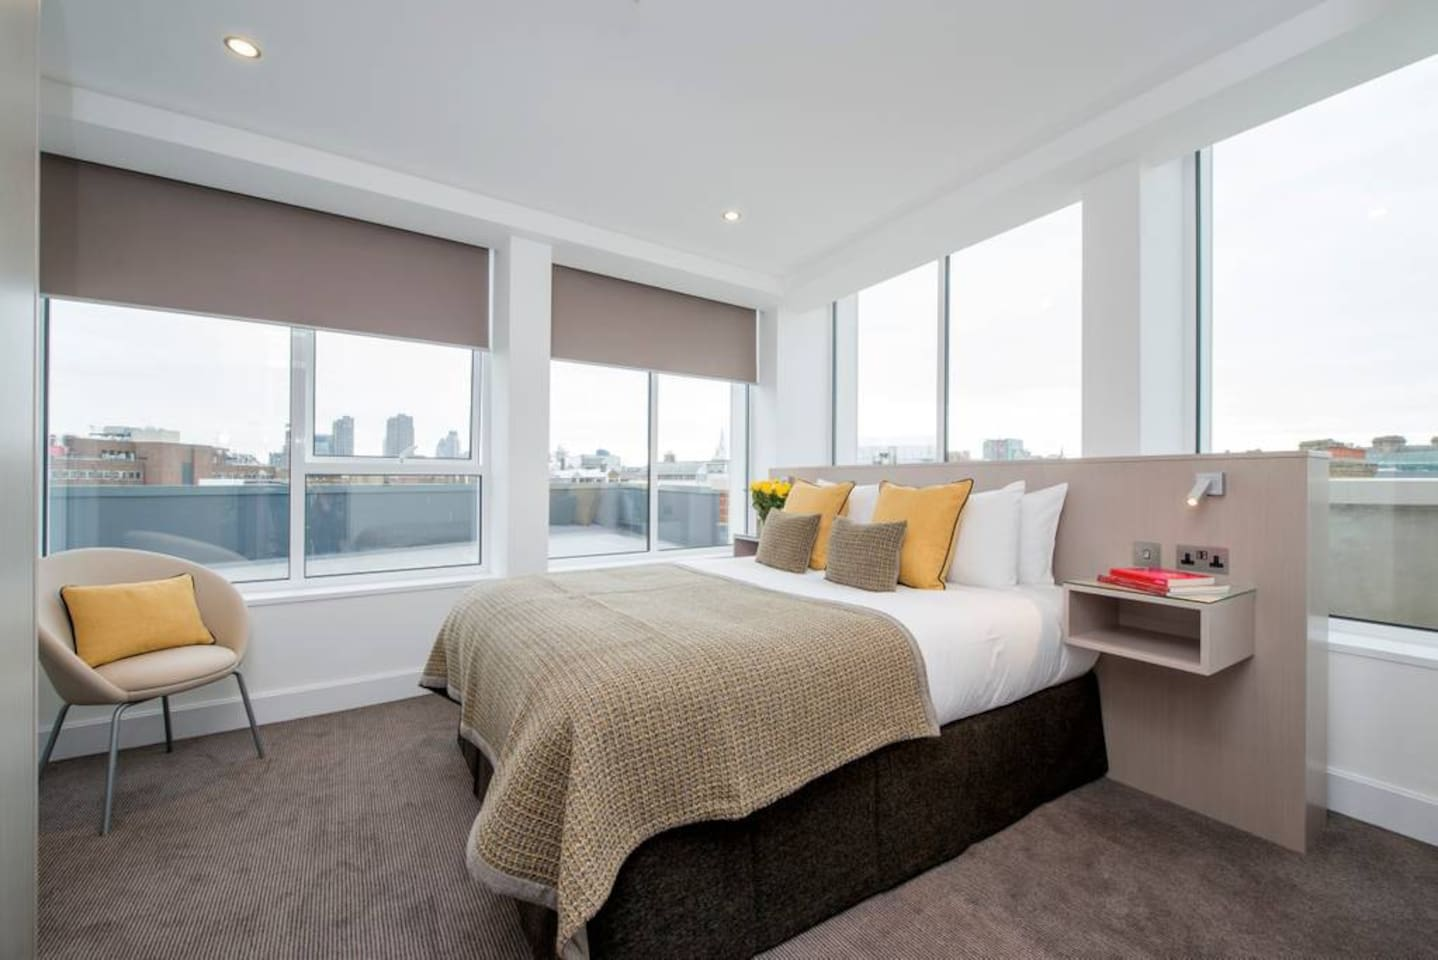 Our Two Bedroom City View apartments are approximately 54 sqm and have two bedrooms and two bathrooms with the master bedroom offering stunning views across the capital